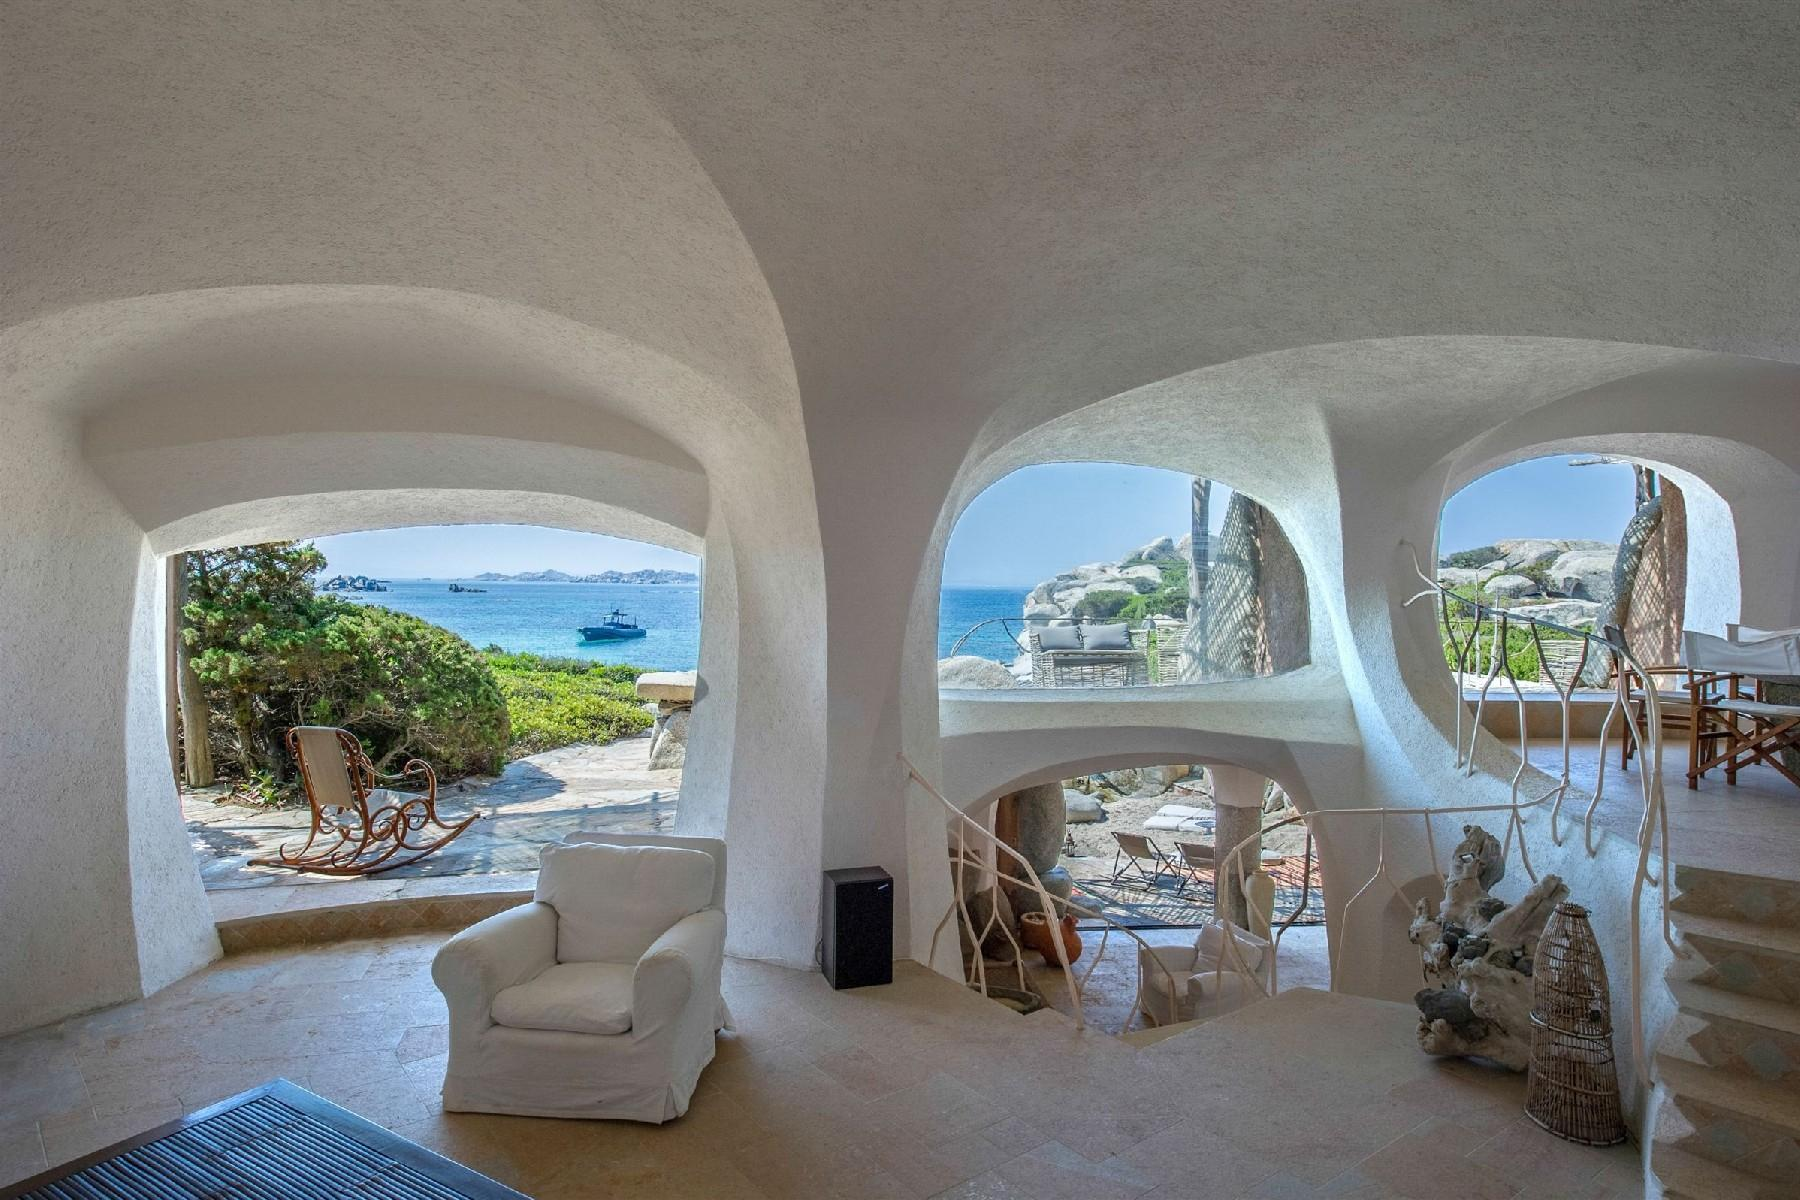 Cavallo Island, Corsica - Pieds-dans-l'eau villa designed by the architect Savin Couelle - 7